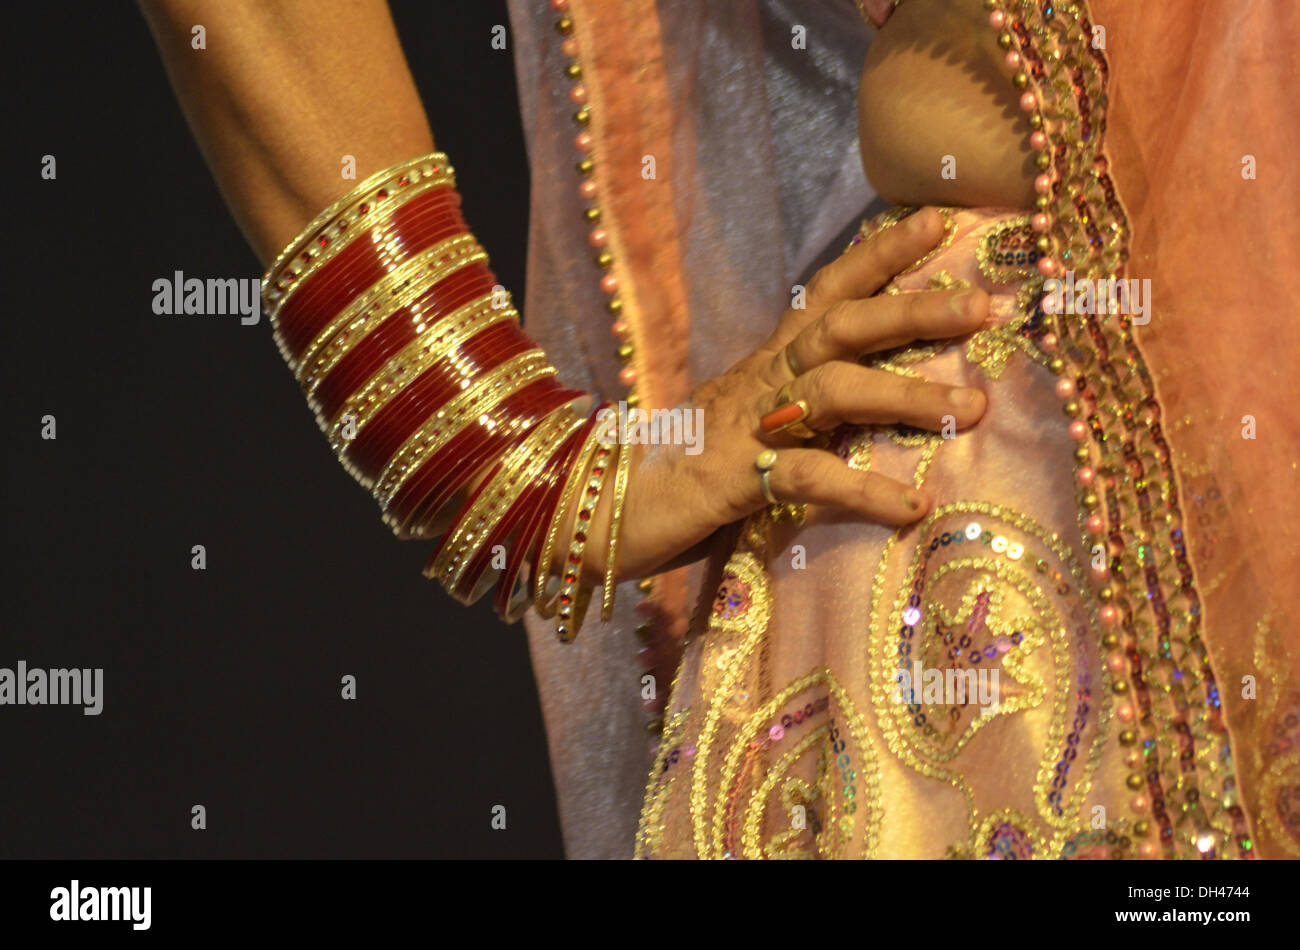 woman kathak dancer wearing bangles with hand on hips Jodhpur ...